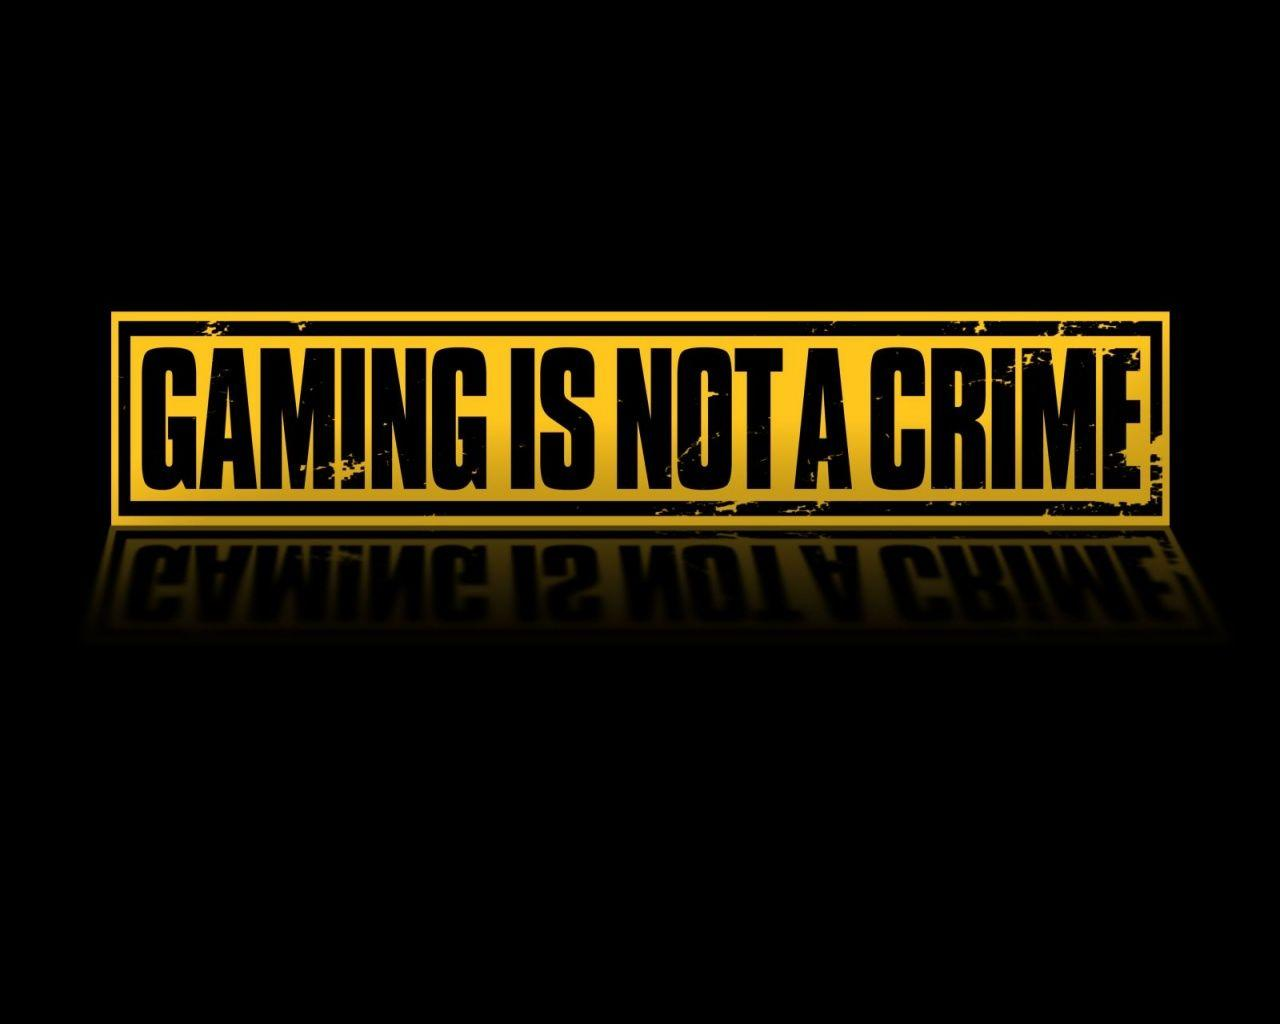 Gaming Pc Wallpapers Wallpaper Cave